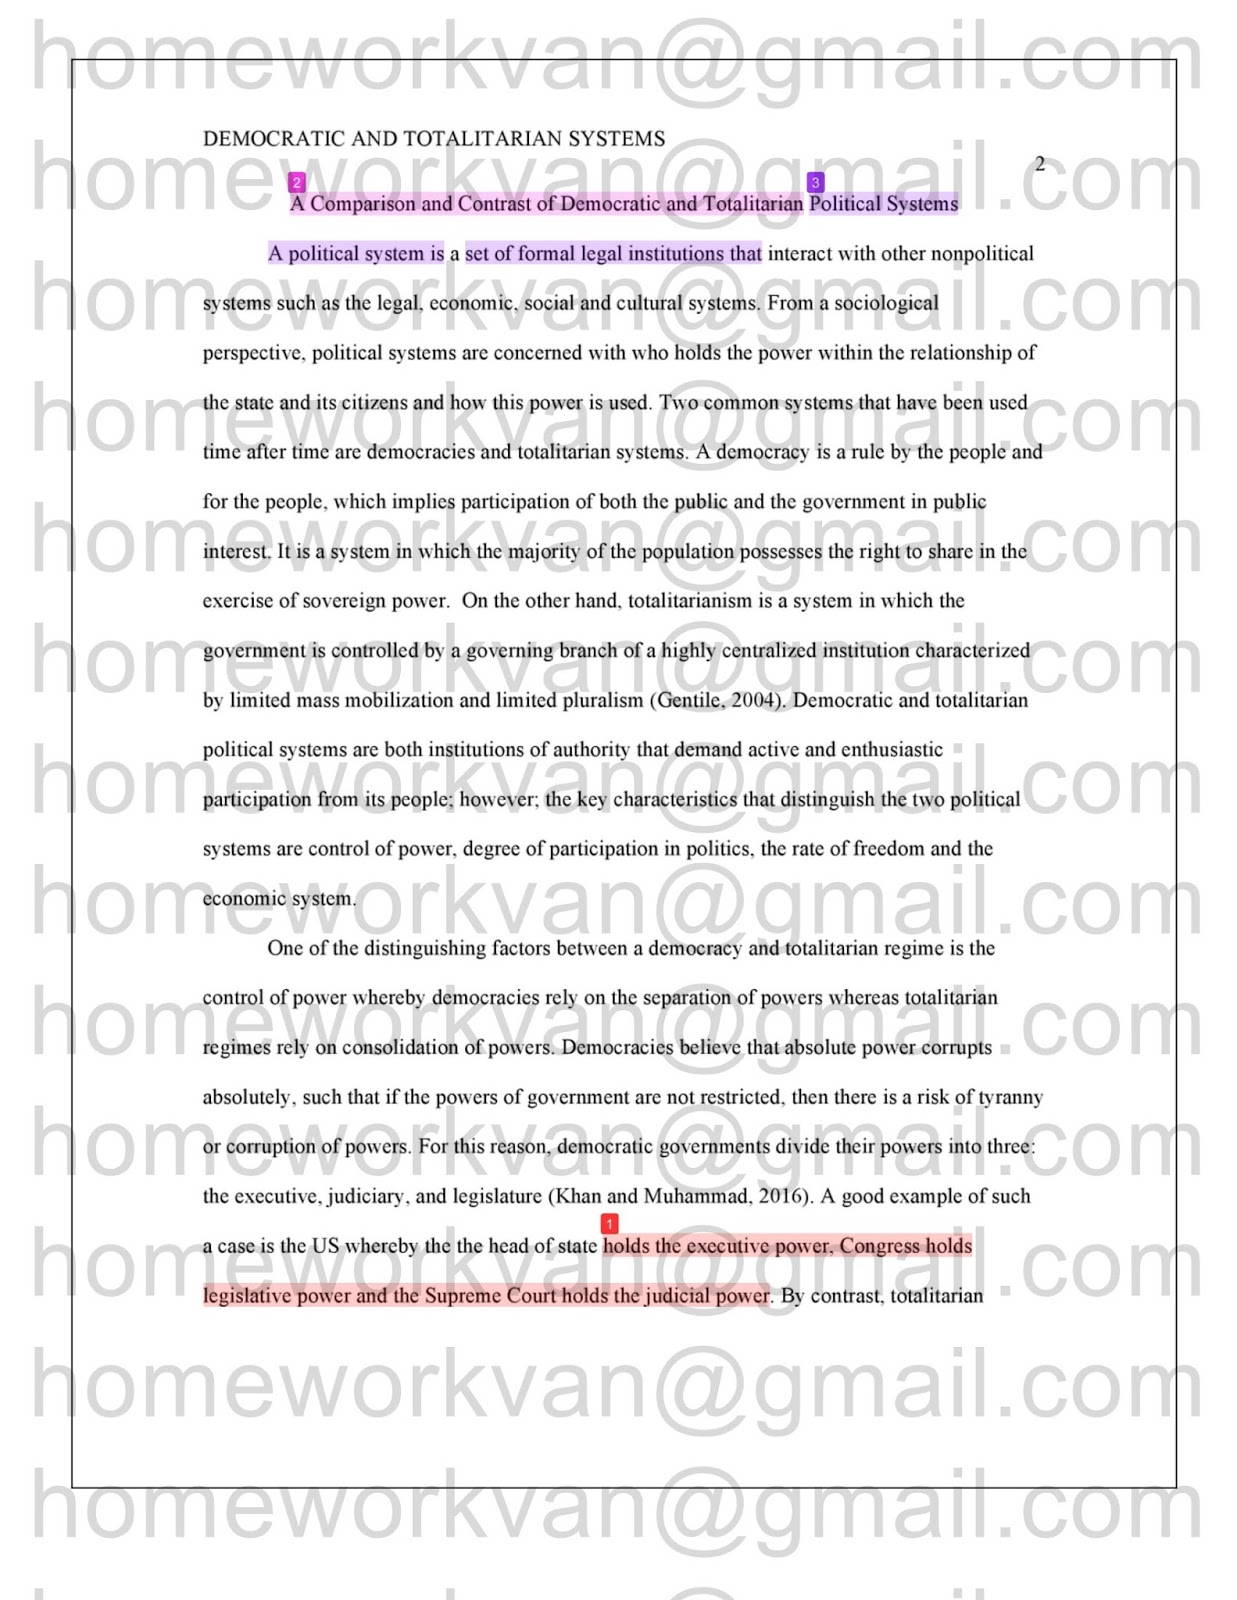 Homeworkvan Official Blog A Comparison Of Democratic And  The Following Is Plagiarism Report For A Comparison Of Democratic And  Totalitarian Political Systems  Compare And Contrast Essay Sample By  Homeworkvan